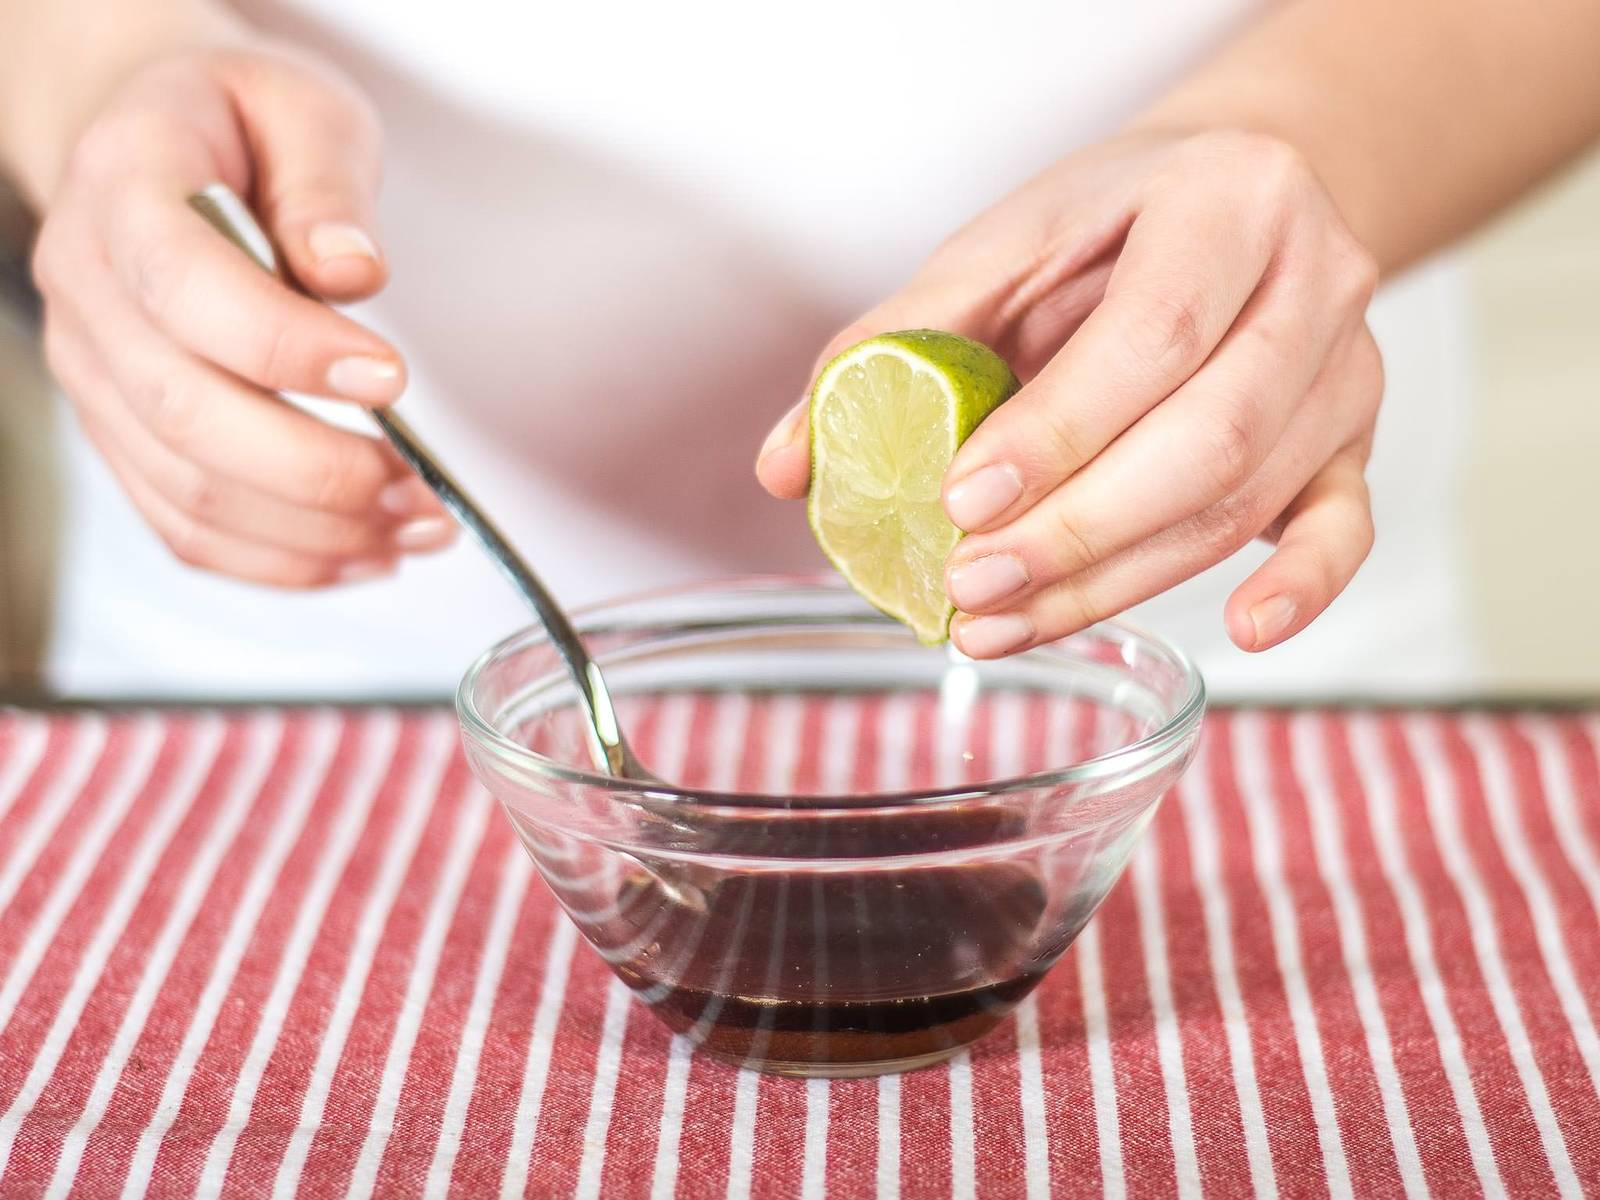 Mix fish sauce, soy sauce, brown sugar, and lime juice together in a small bowl.